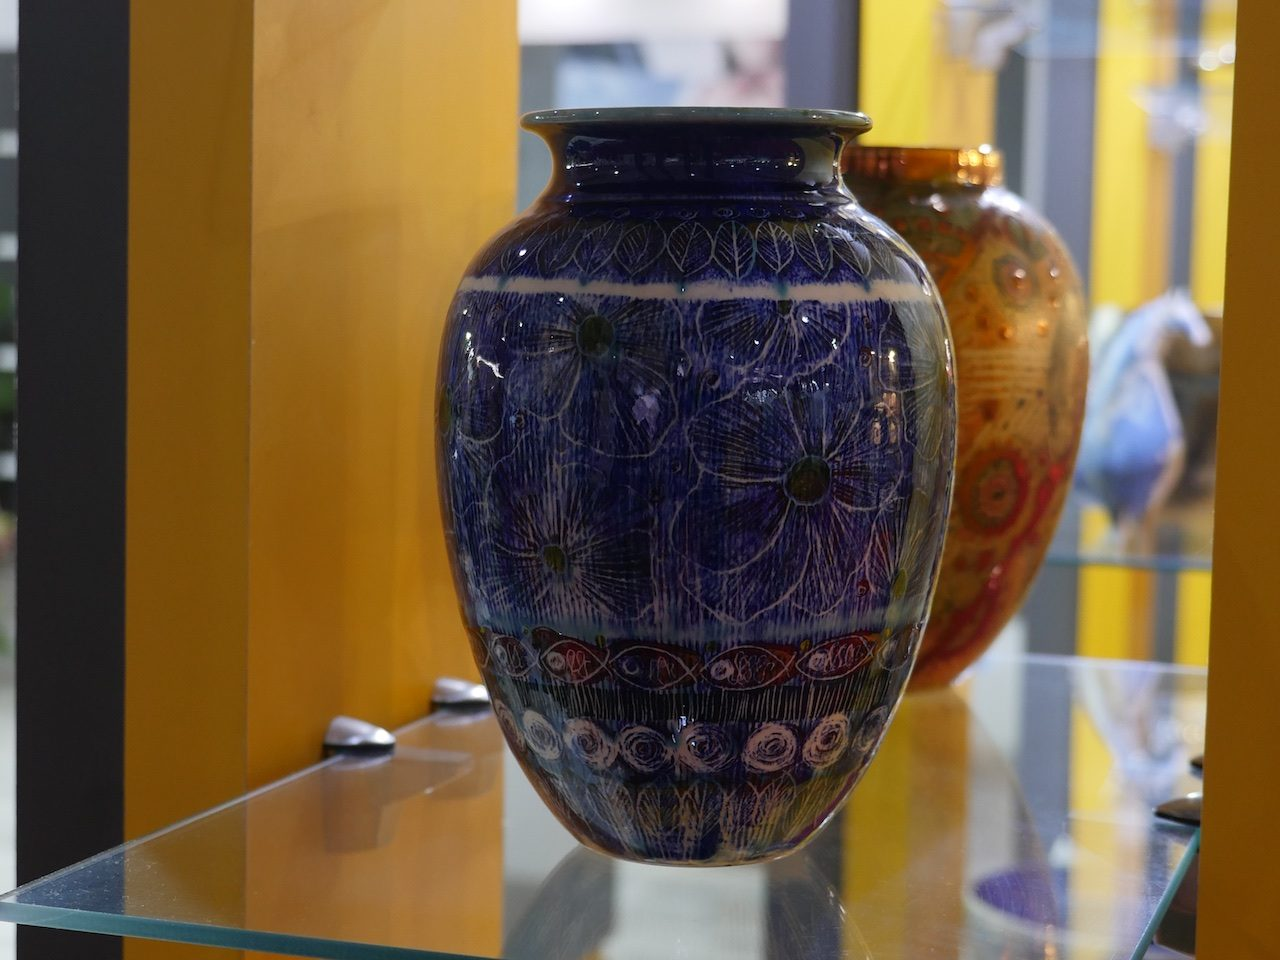 Pottery at the Handcrafts Exhibition